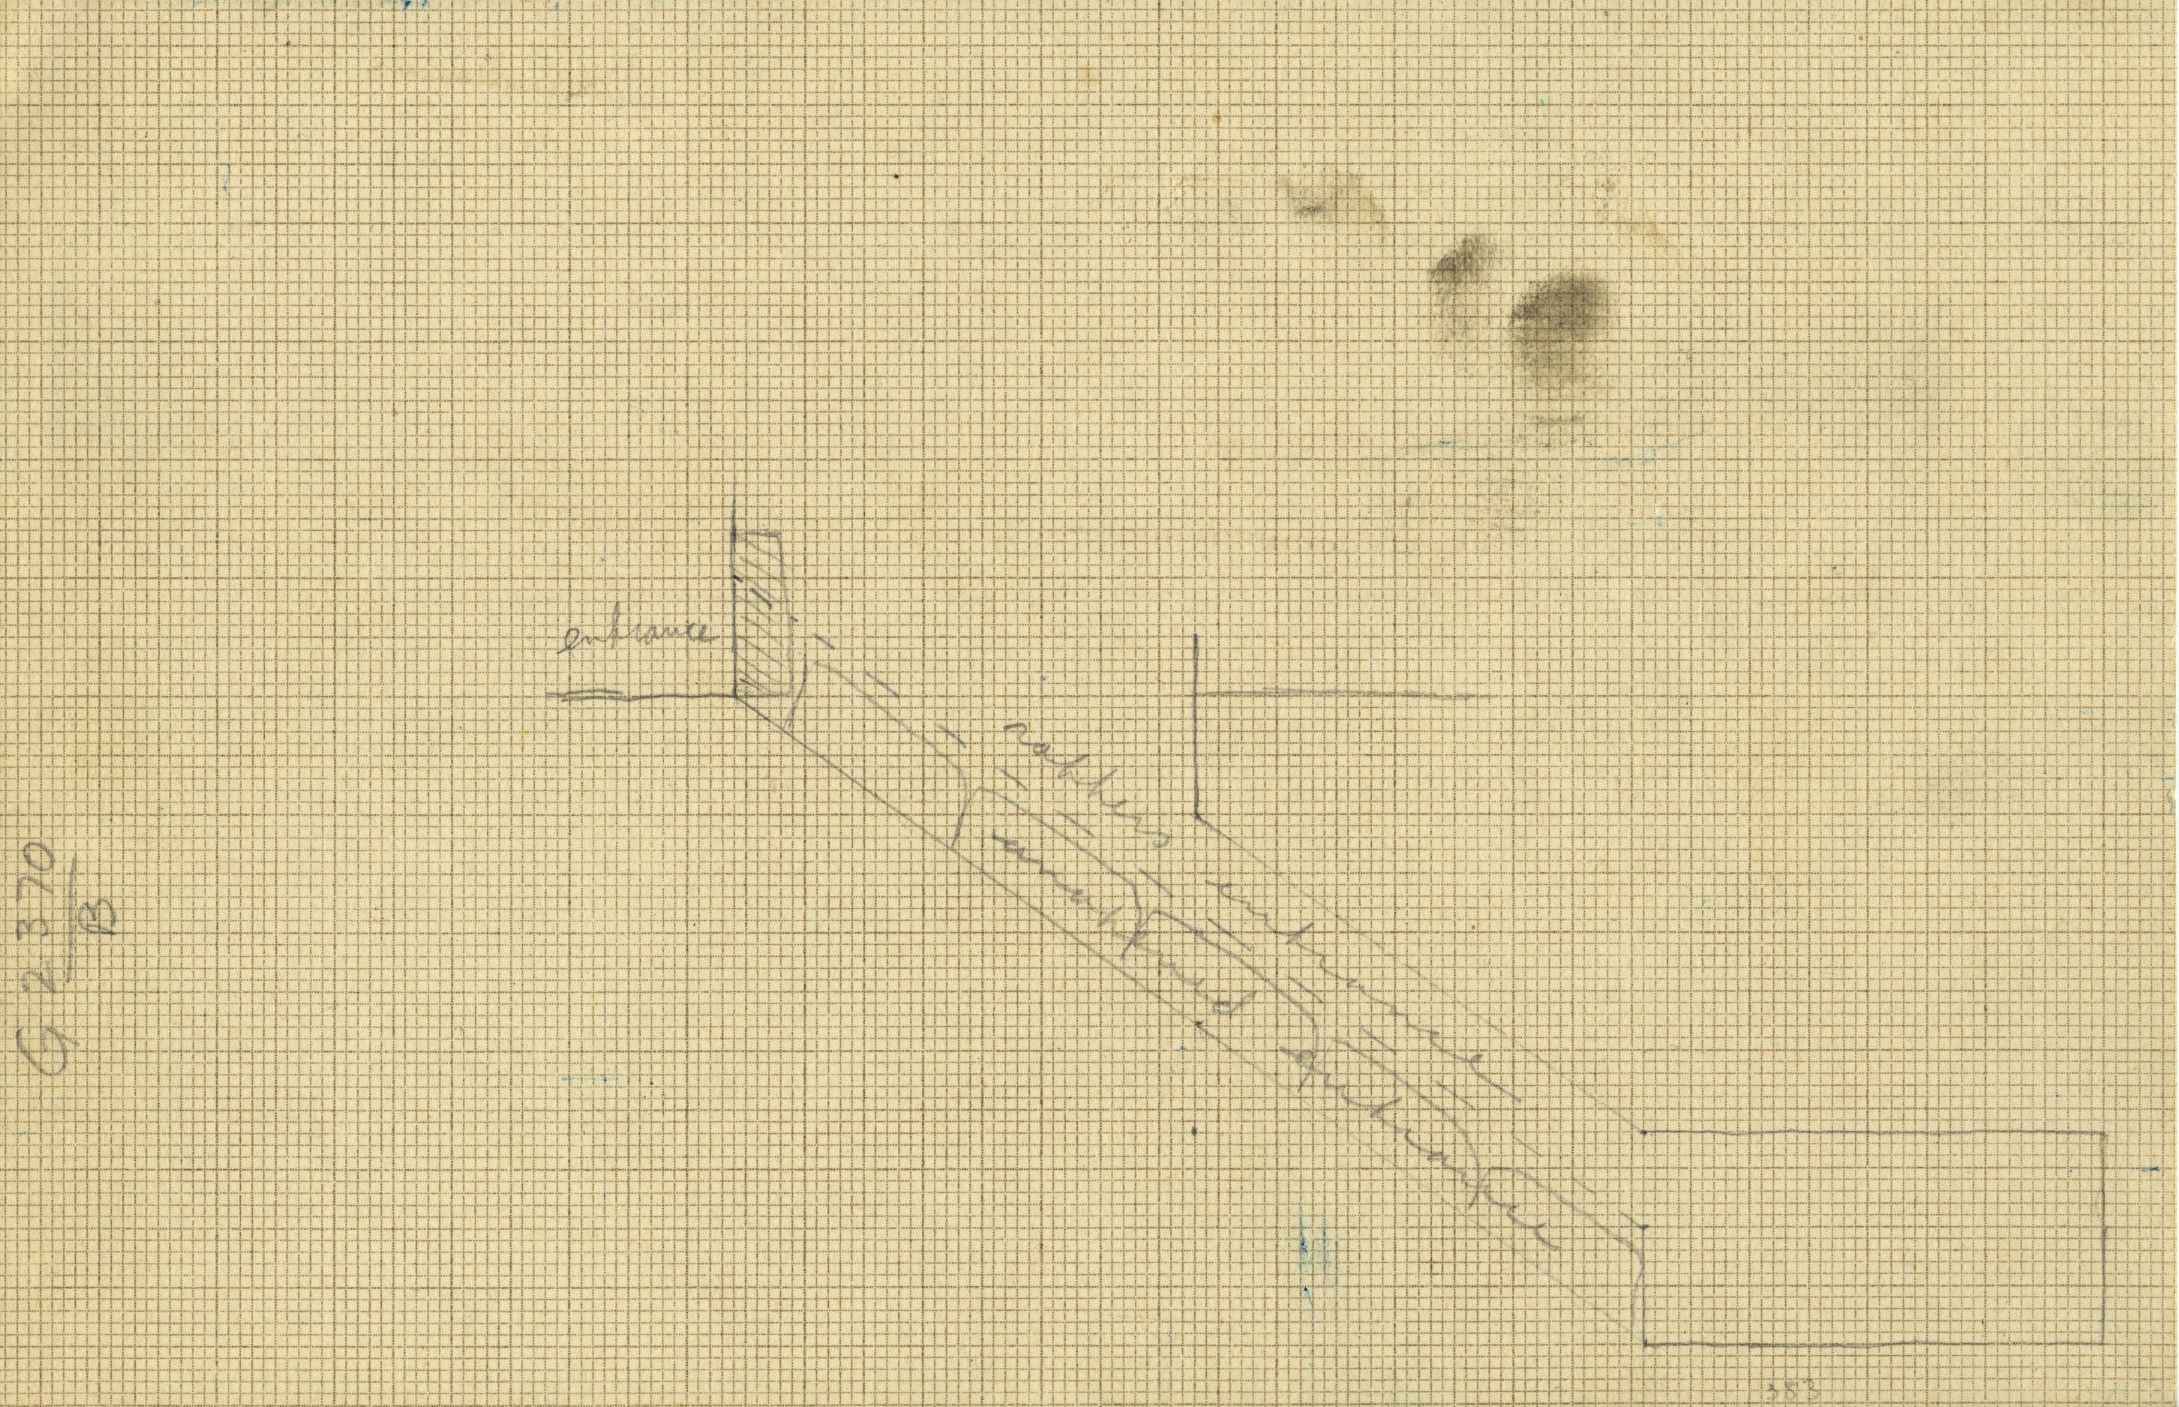 Maps and plans: G 2370, Shaft B